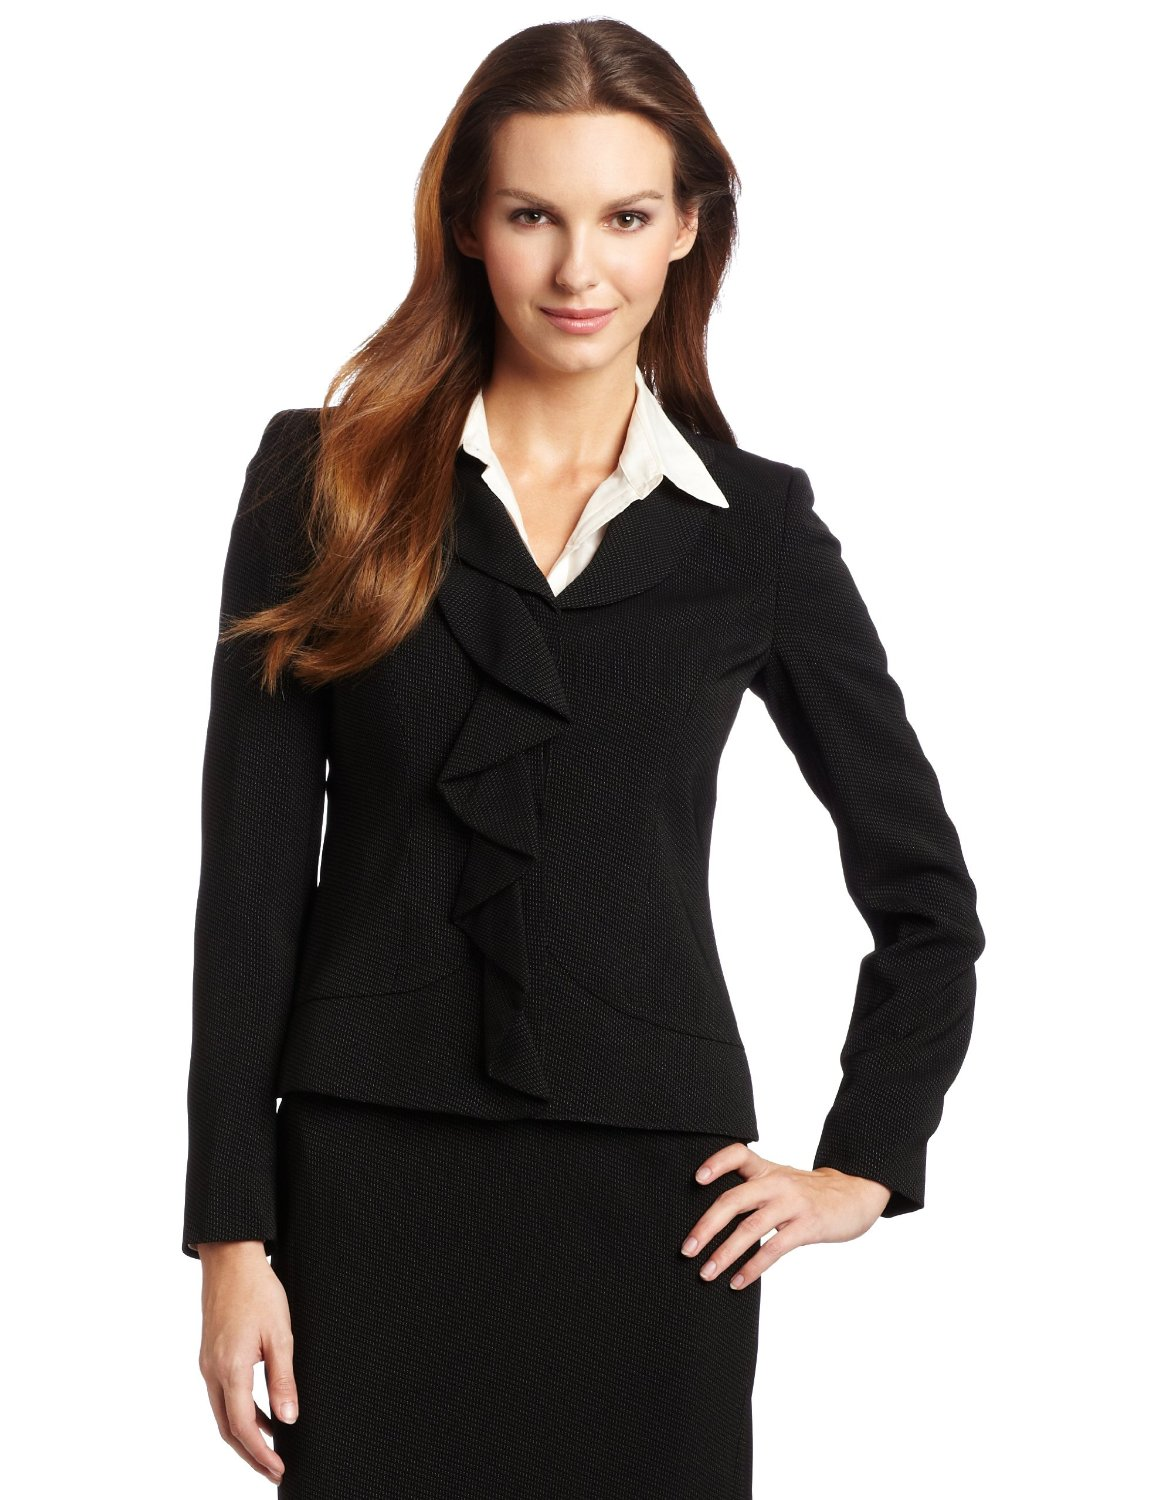 business_casual_women_dress_suit_code.jpg